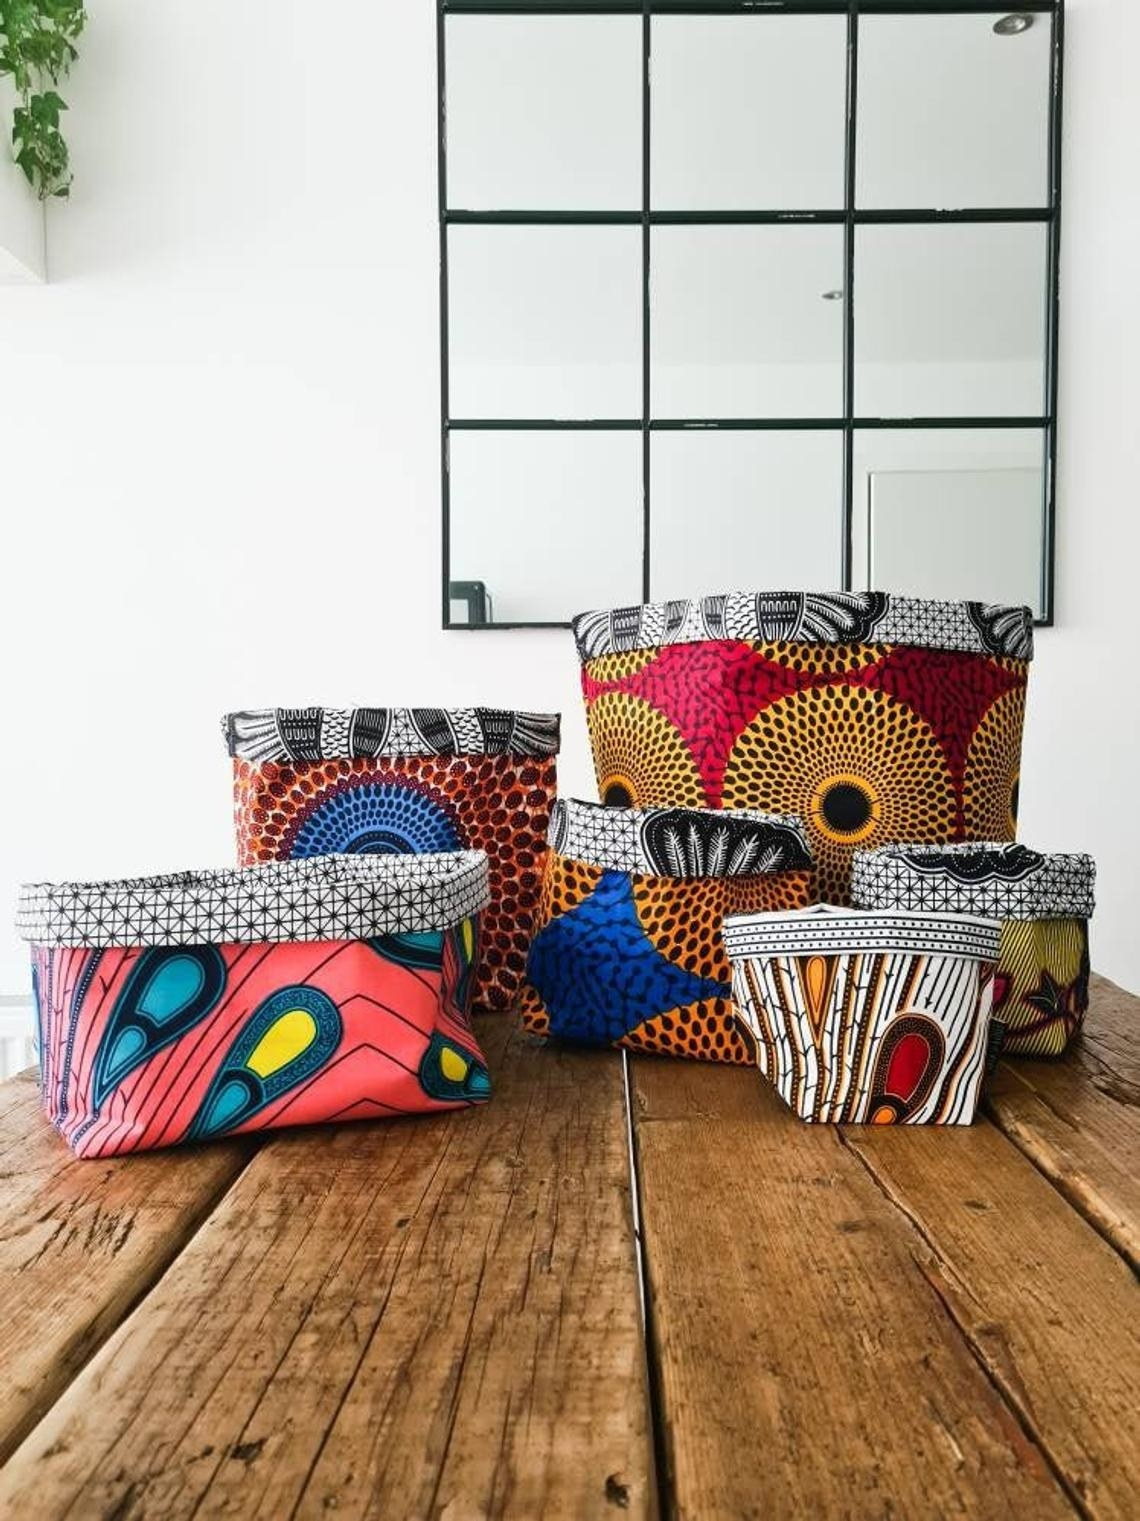 The fabric baskets with colorful fabric on the outside and black and white fabric on the inside